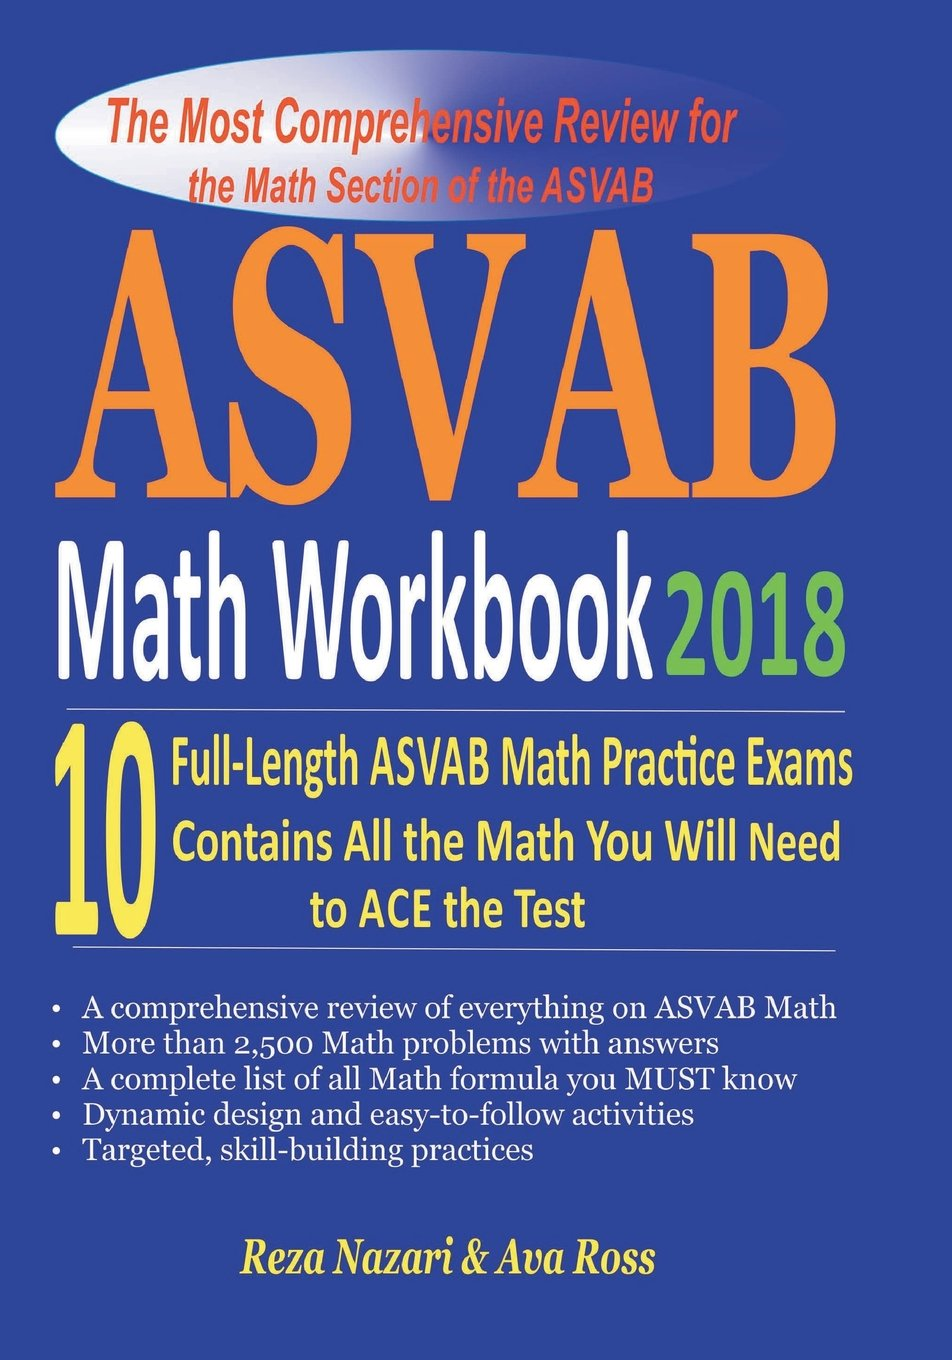 ASVAB Math Workbook 2018: The Most Comprehensive Review for